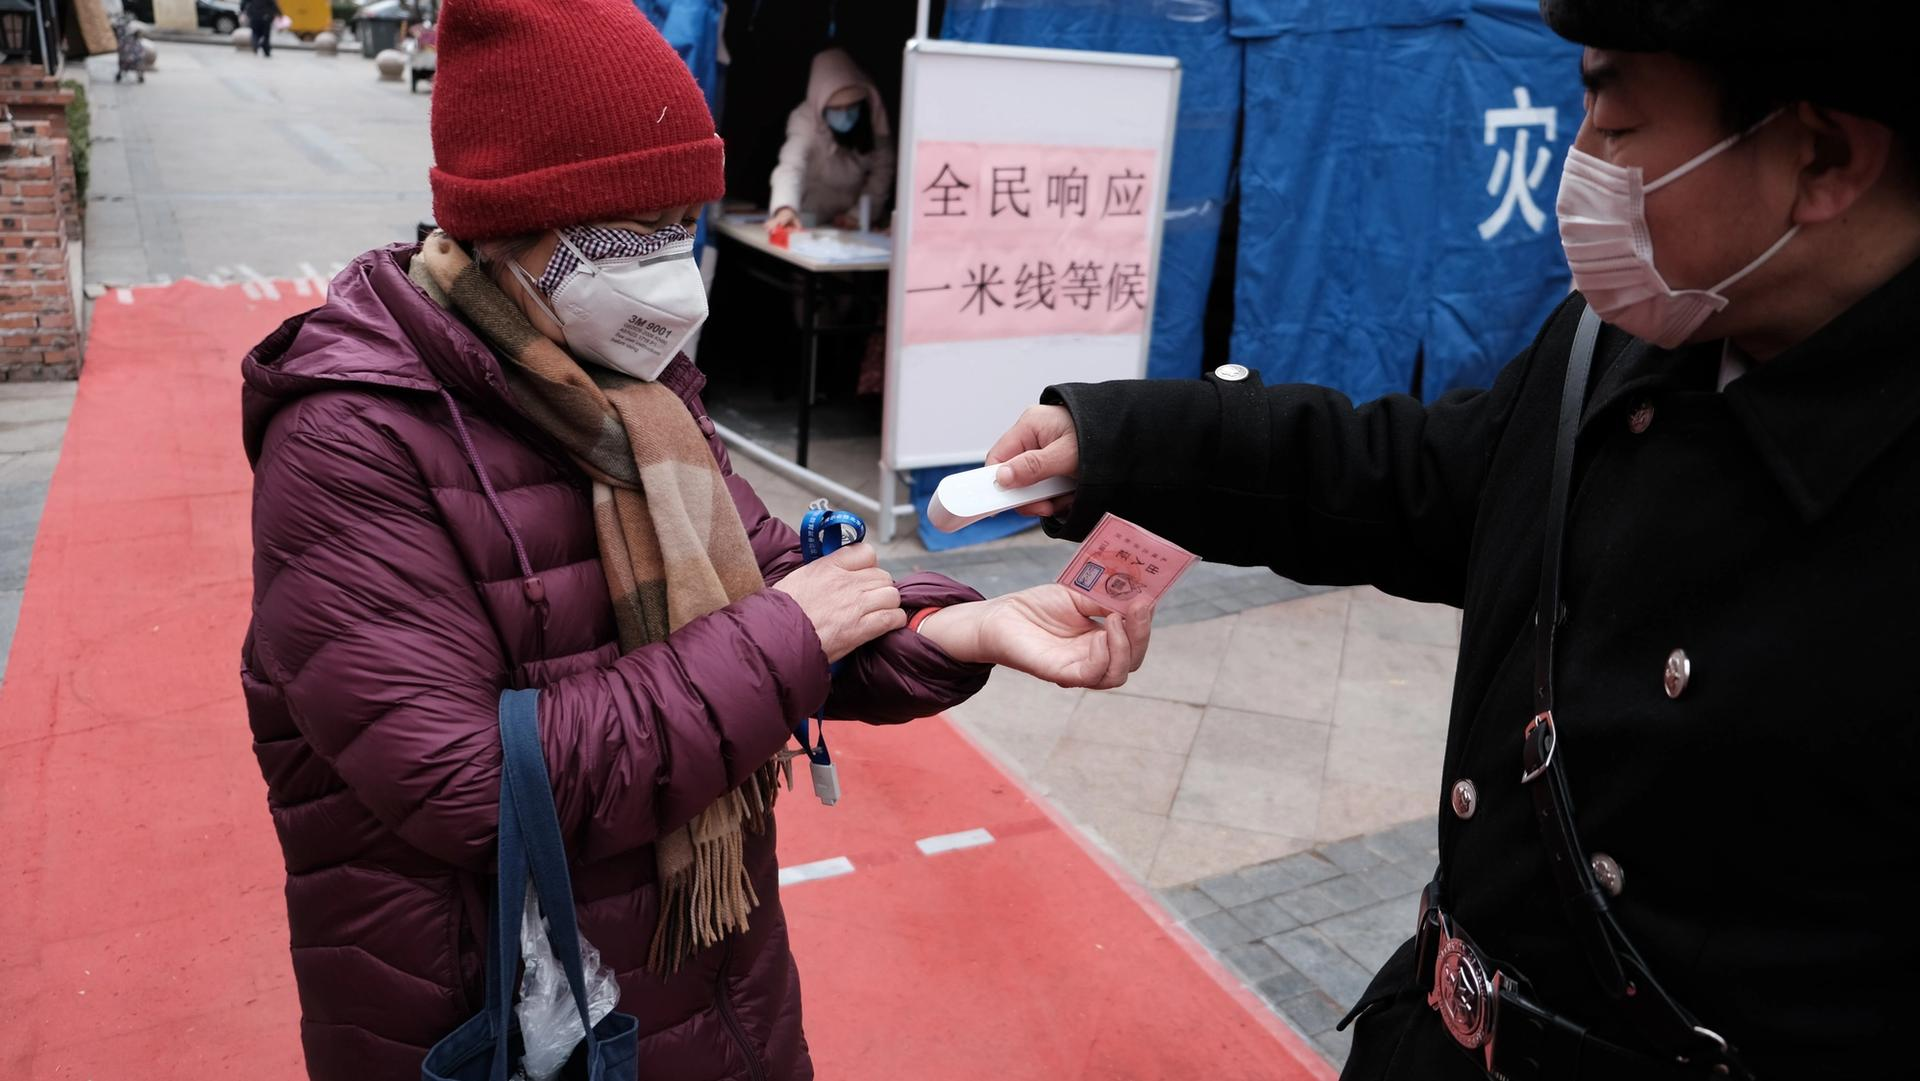 Temperature checking and visitor registration continue to be mandatory at Beijing's cultural institutions © Kian Zhang